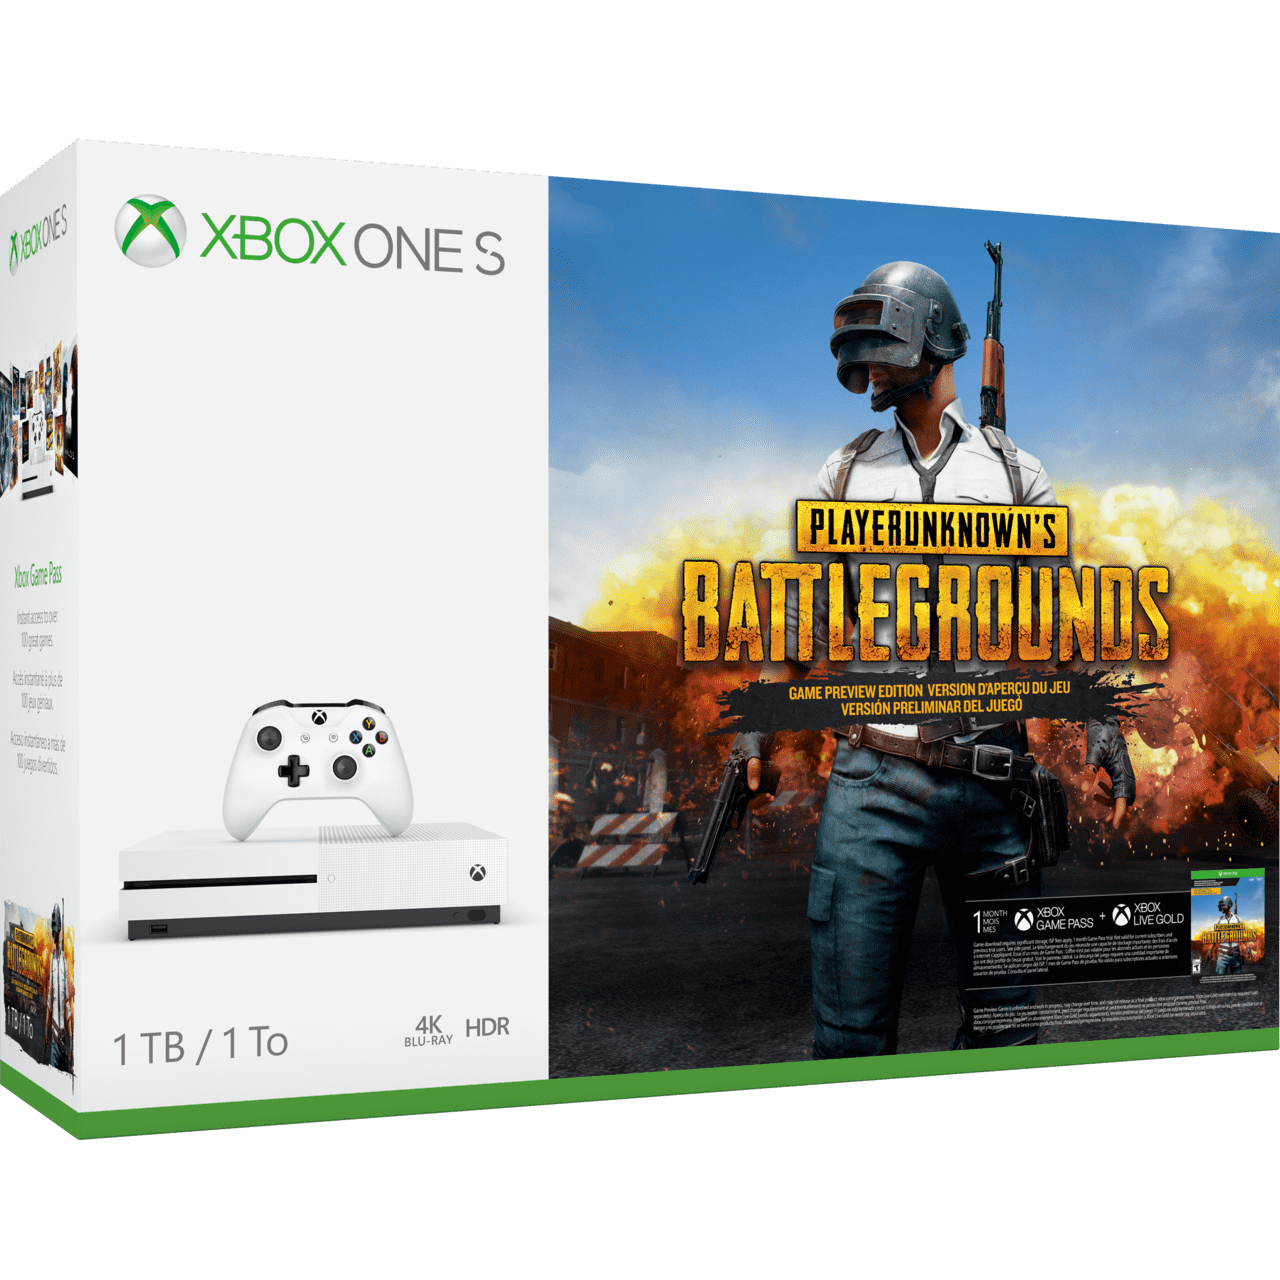 Pack Xbox One S + PUBG